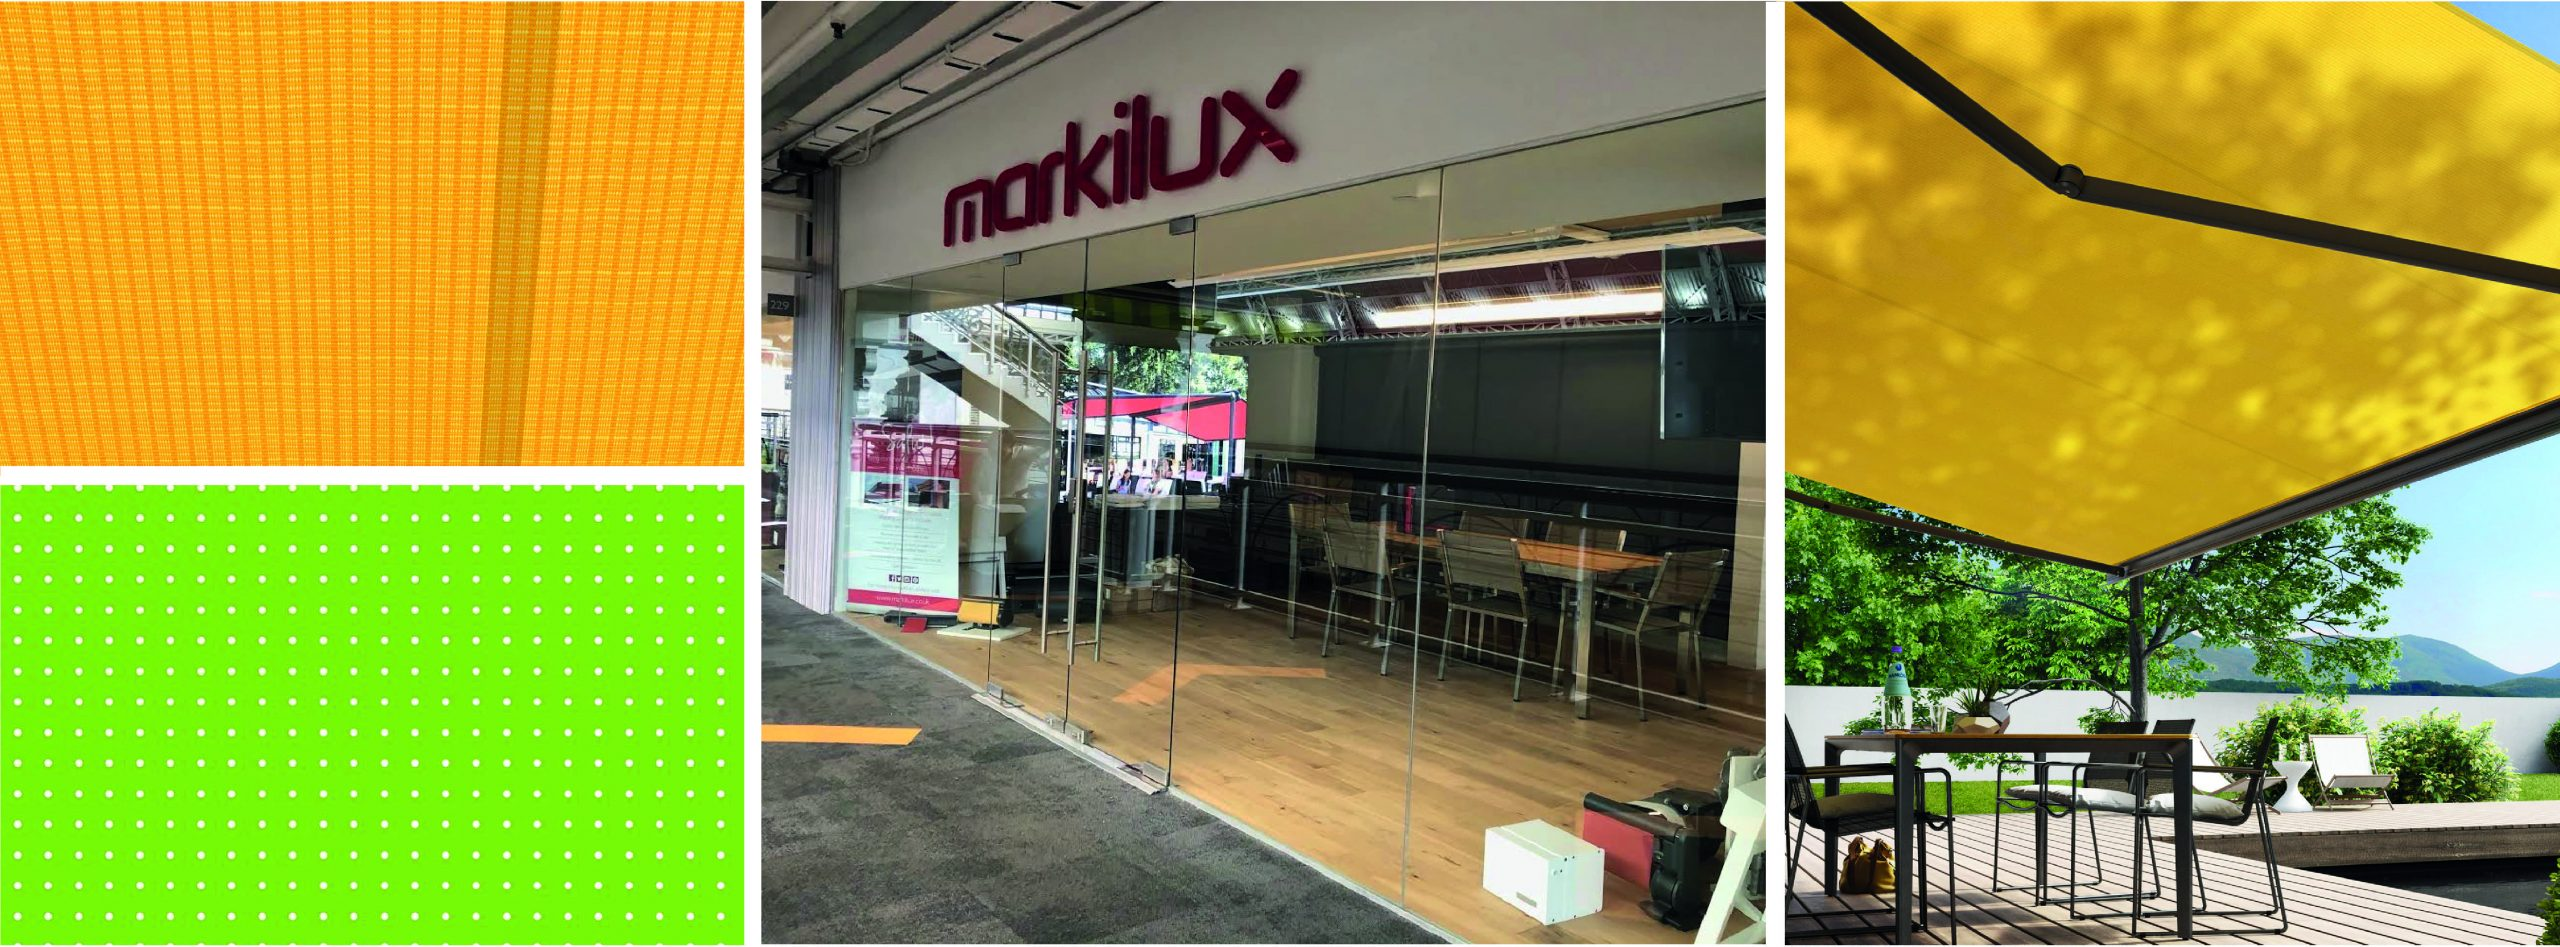 Images from Markilux's London Showroom